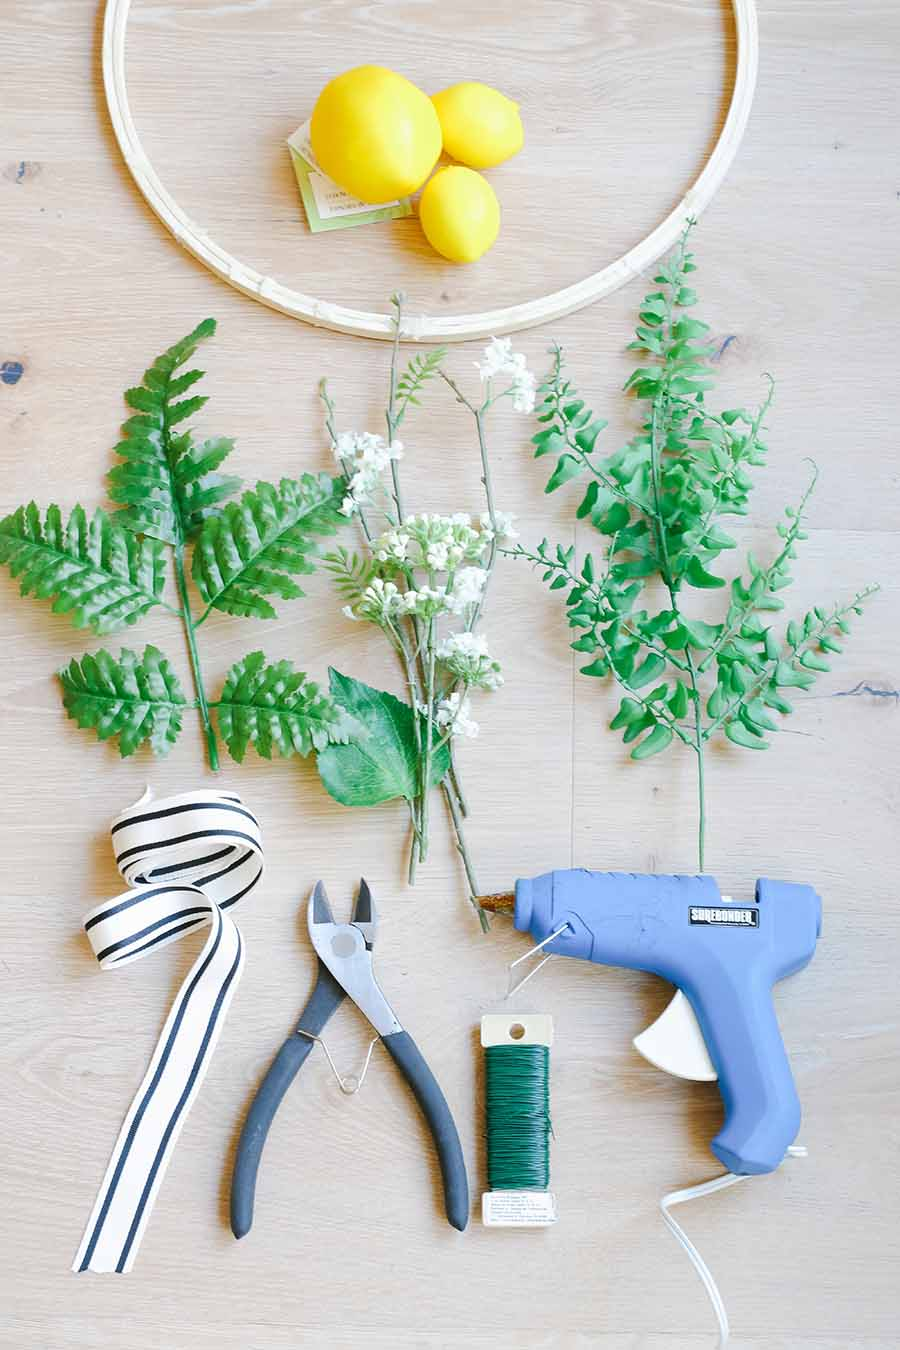 embroidery hoop wreath supplies